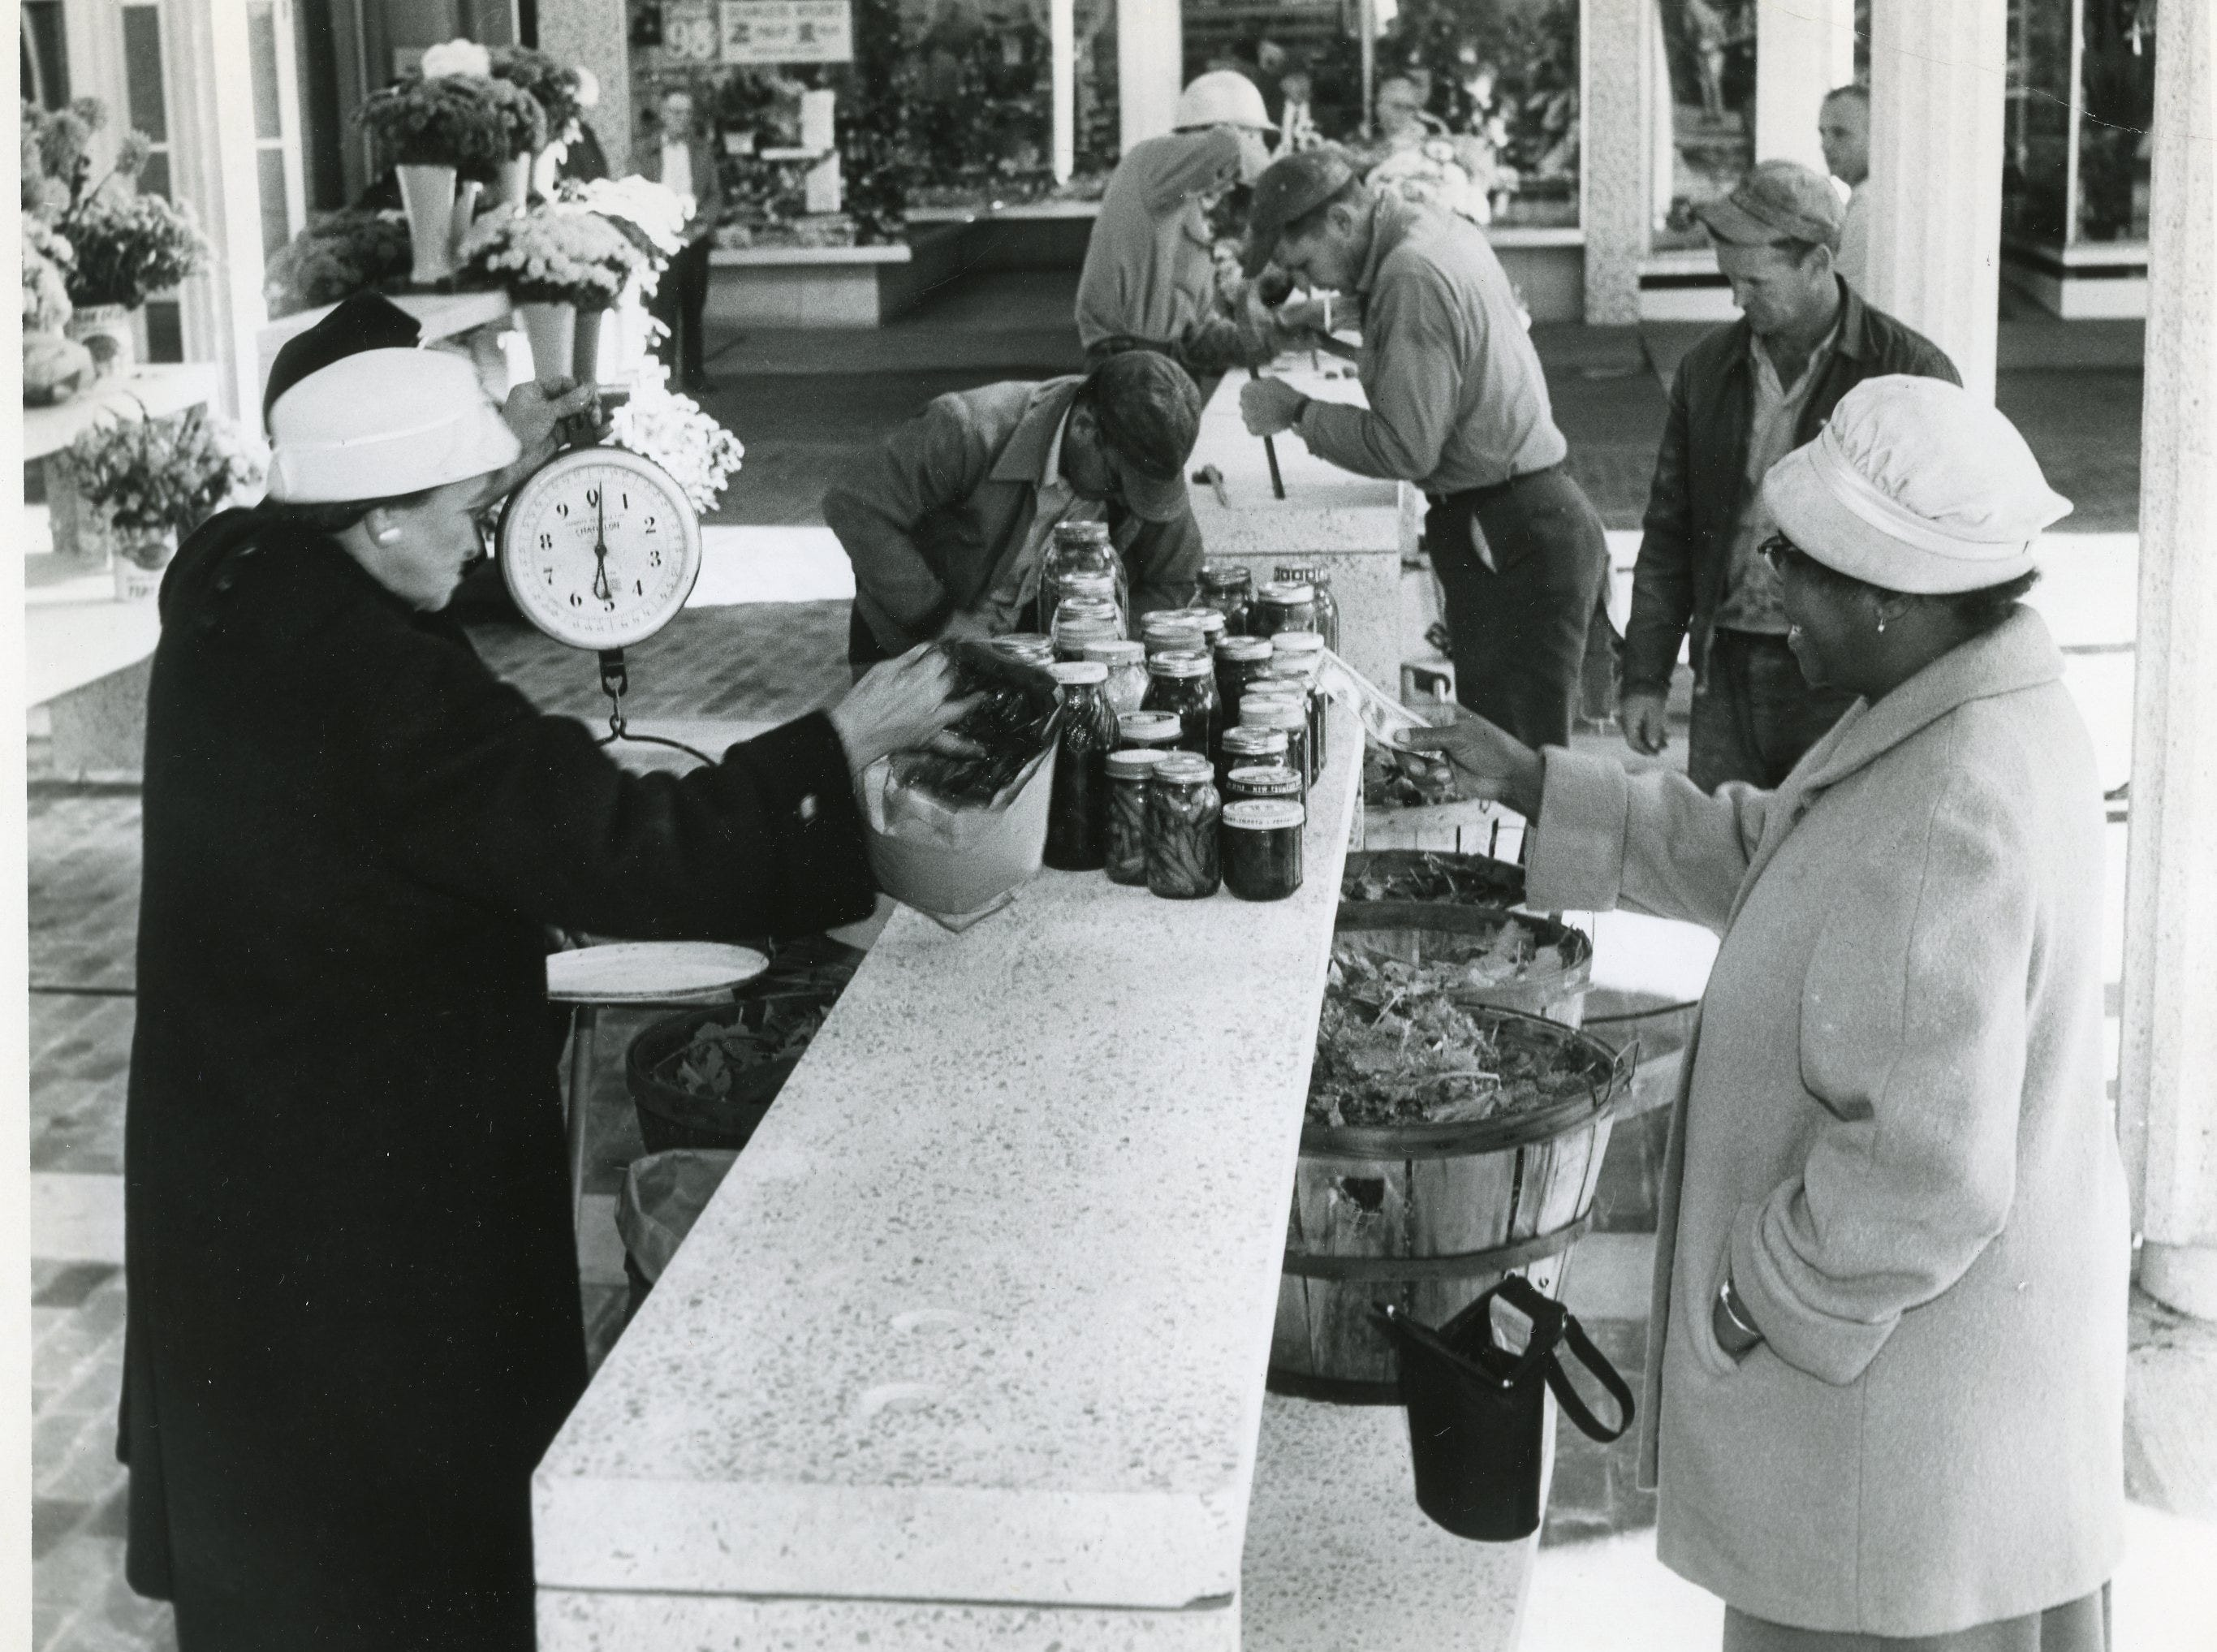 Shoppers on Market Square Mall, October, 1961.